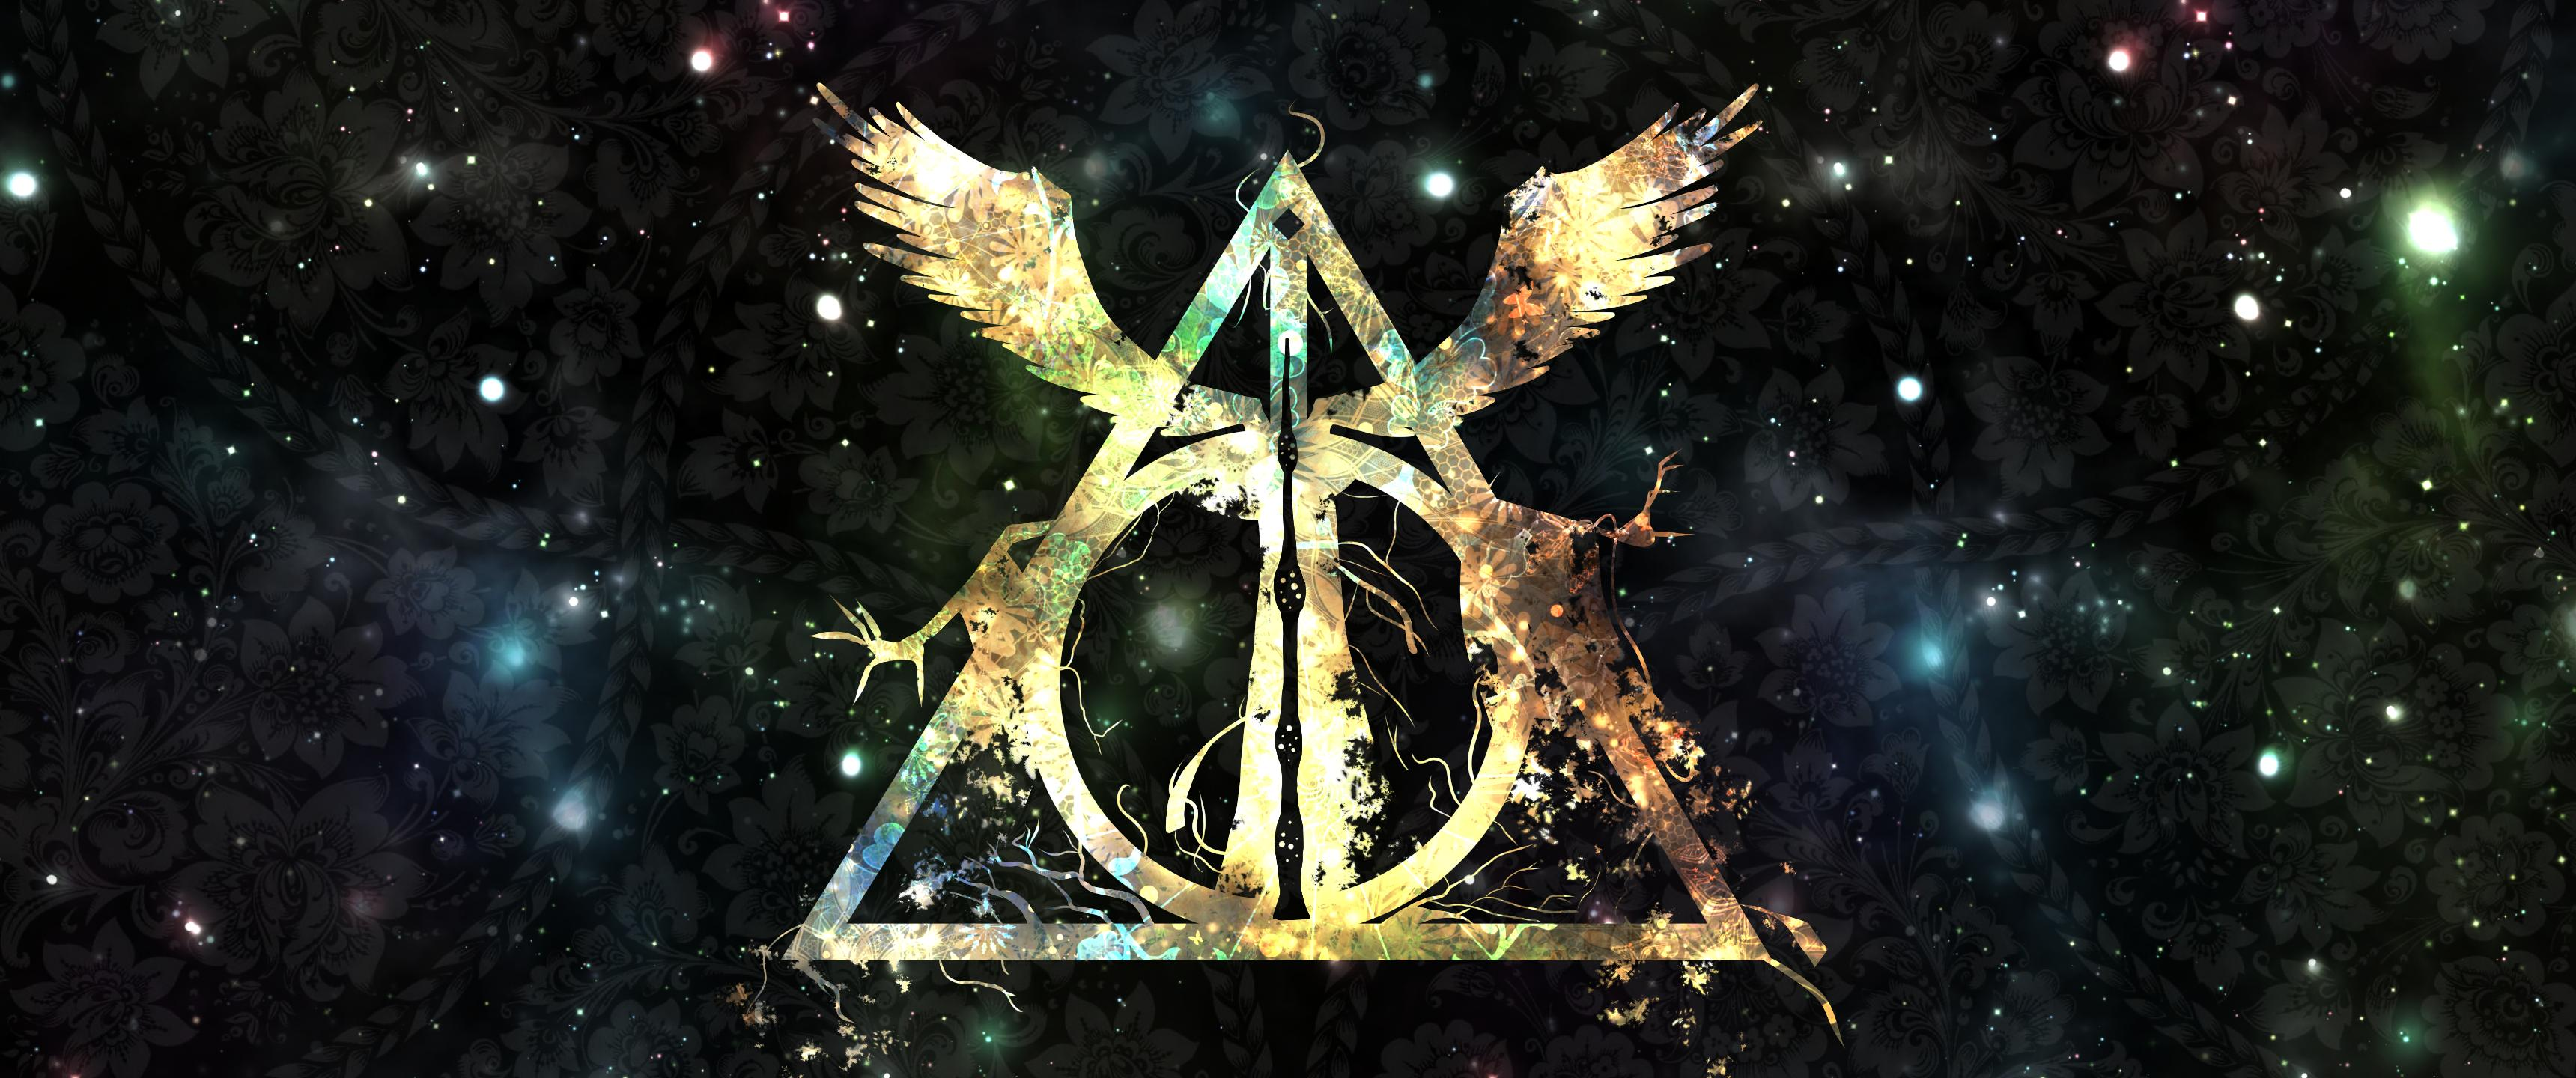 Harry Potter Deathly Hallows Wallpapers Top Free Harry Potter